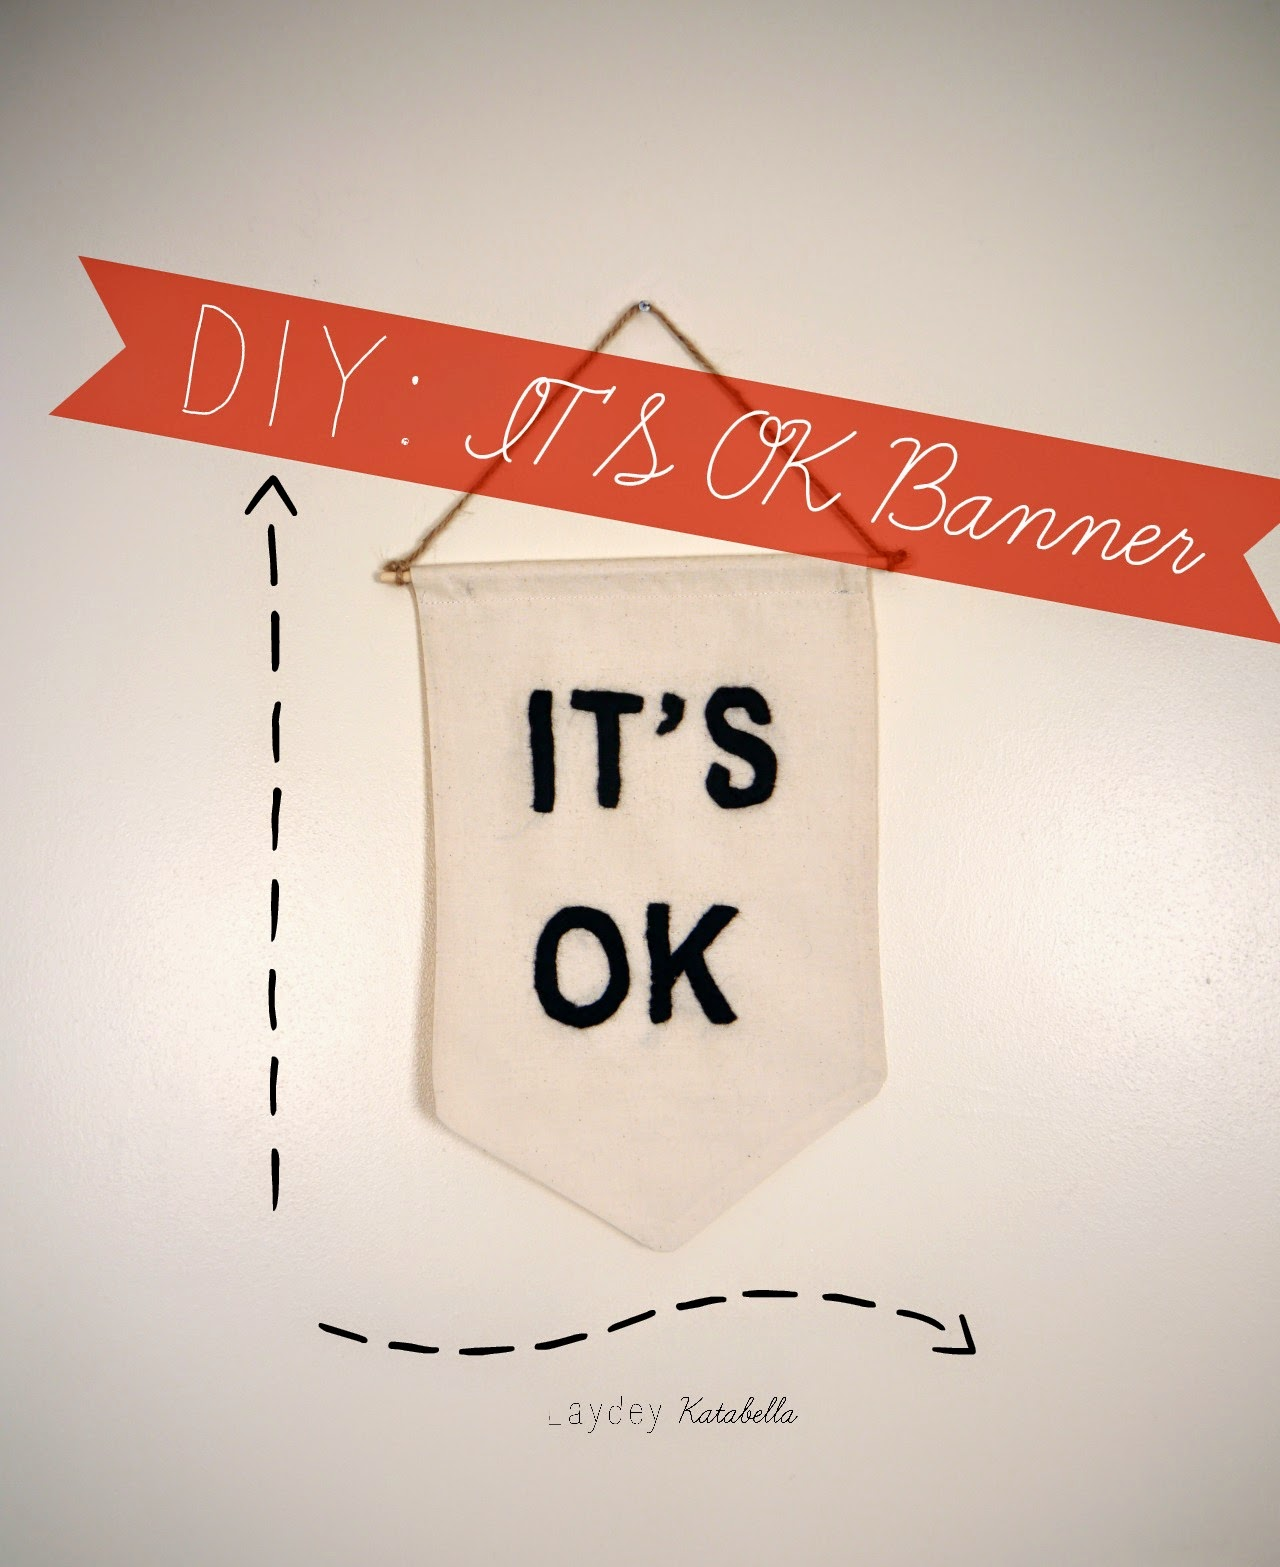 photo of diy it's ok banner